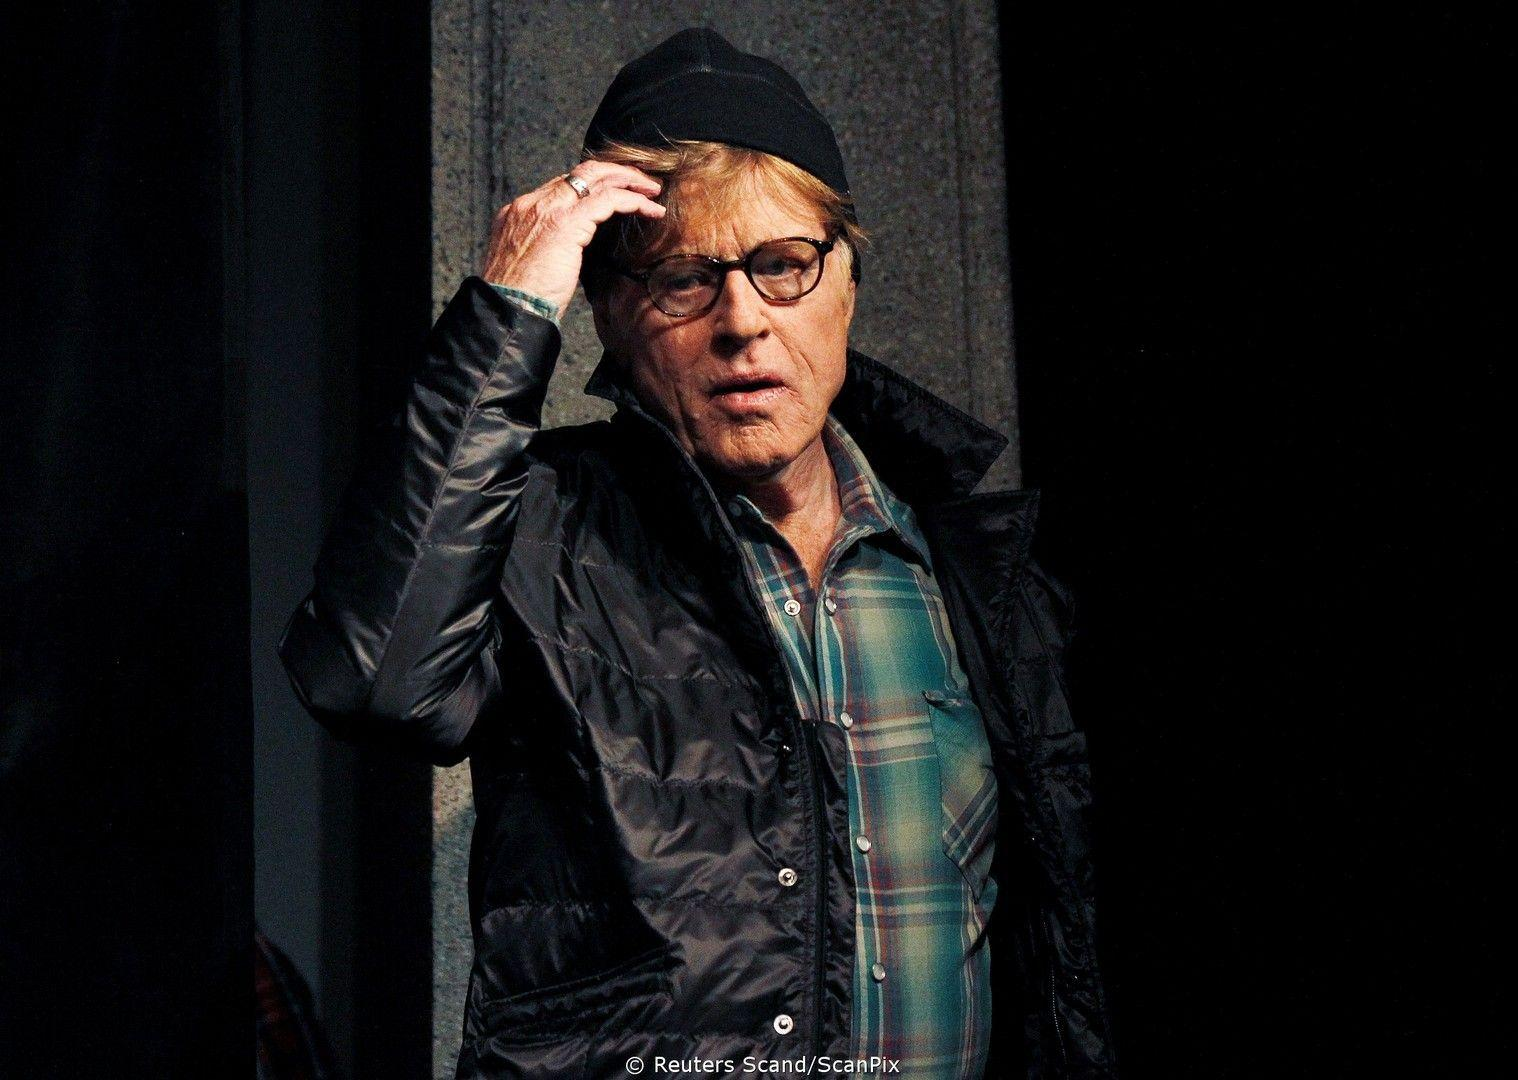 Robert Redford wallpaper | Celebrities wallpaper | Pinterest ...